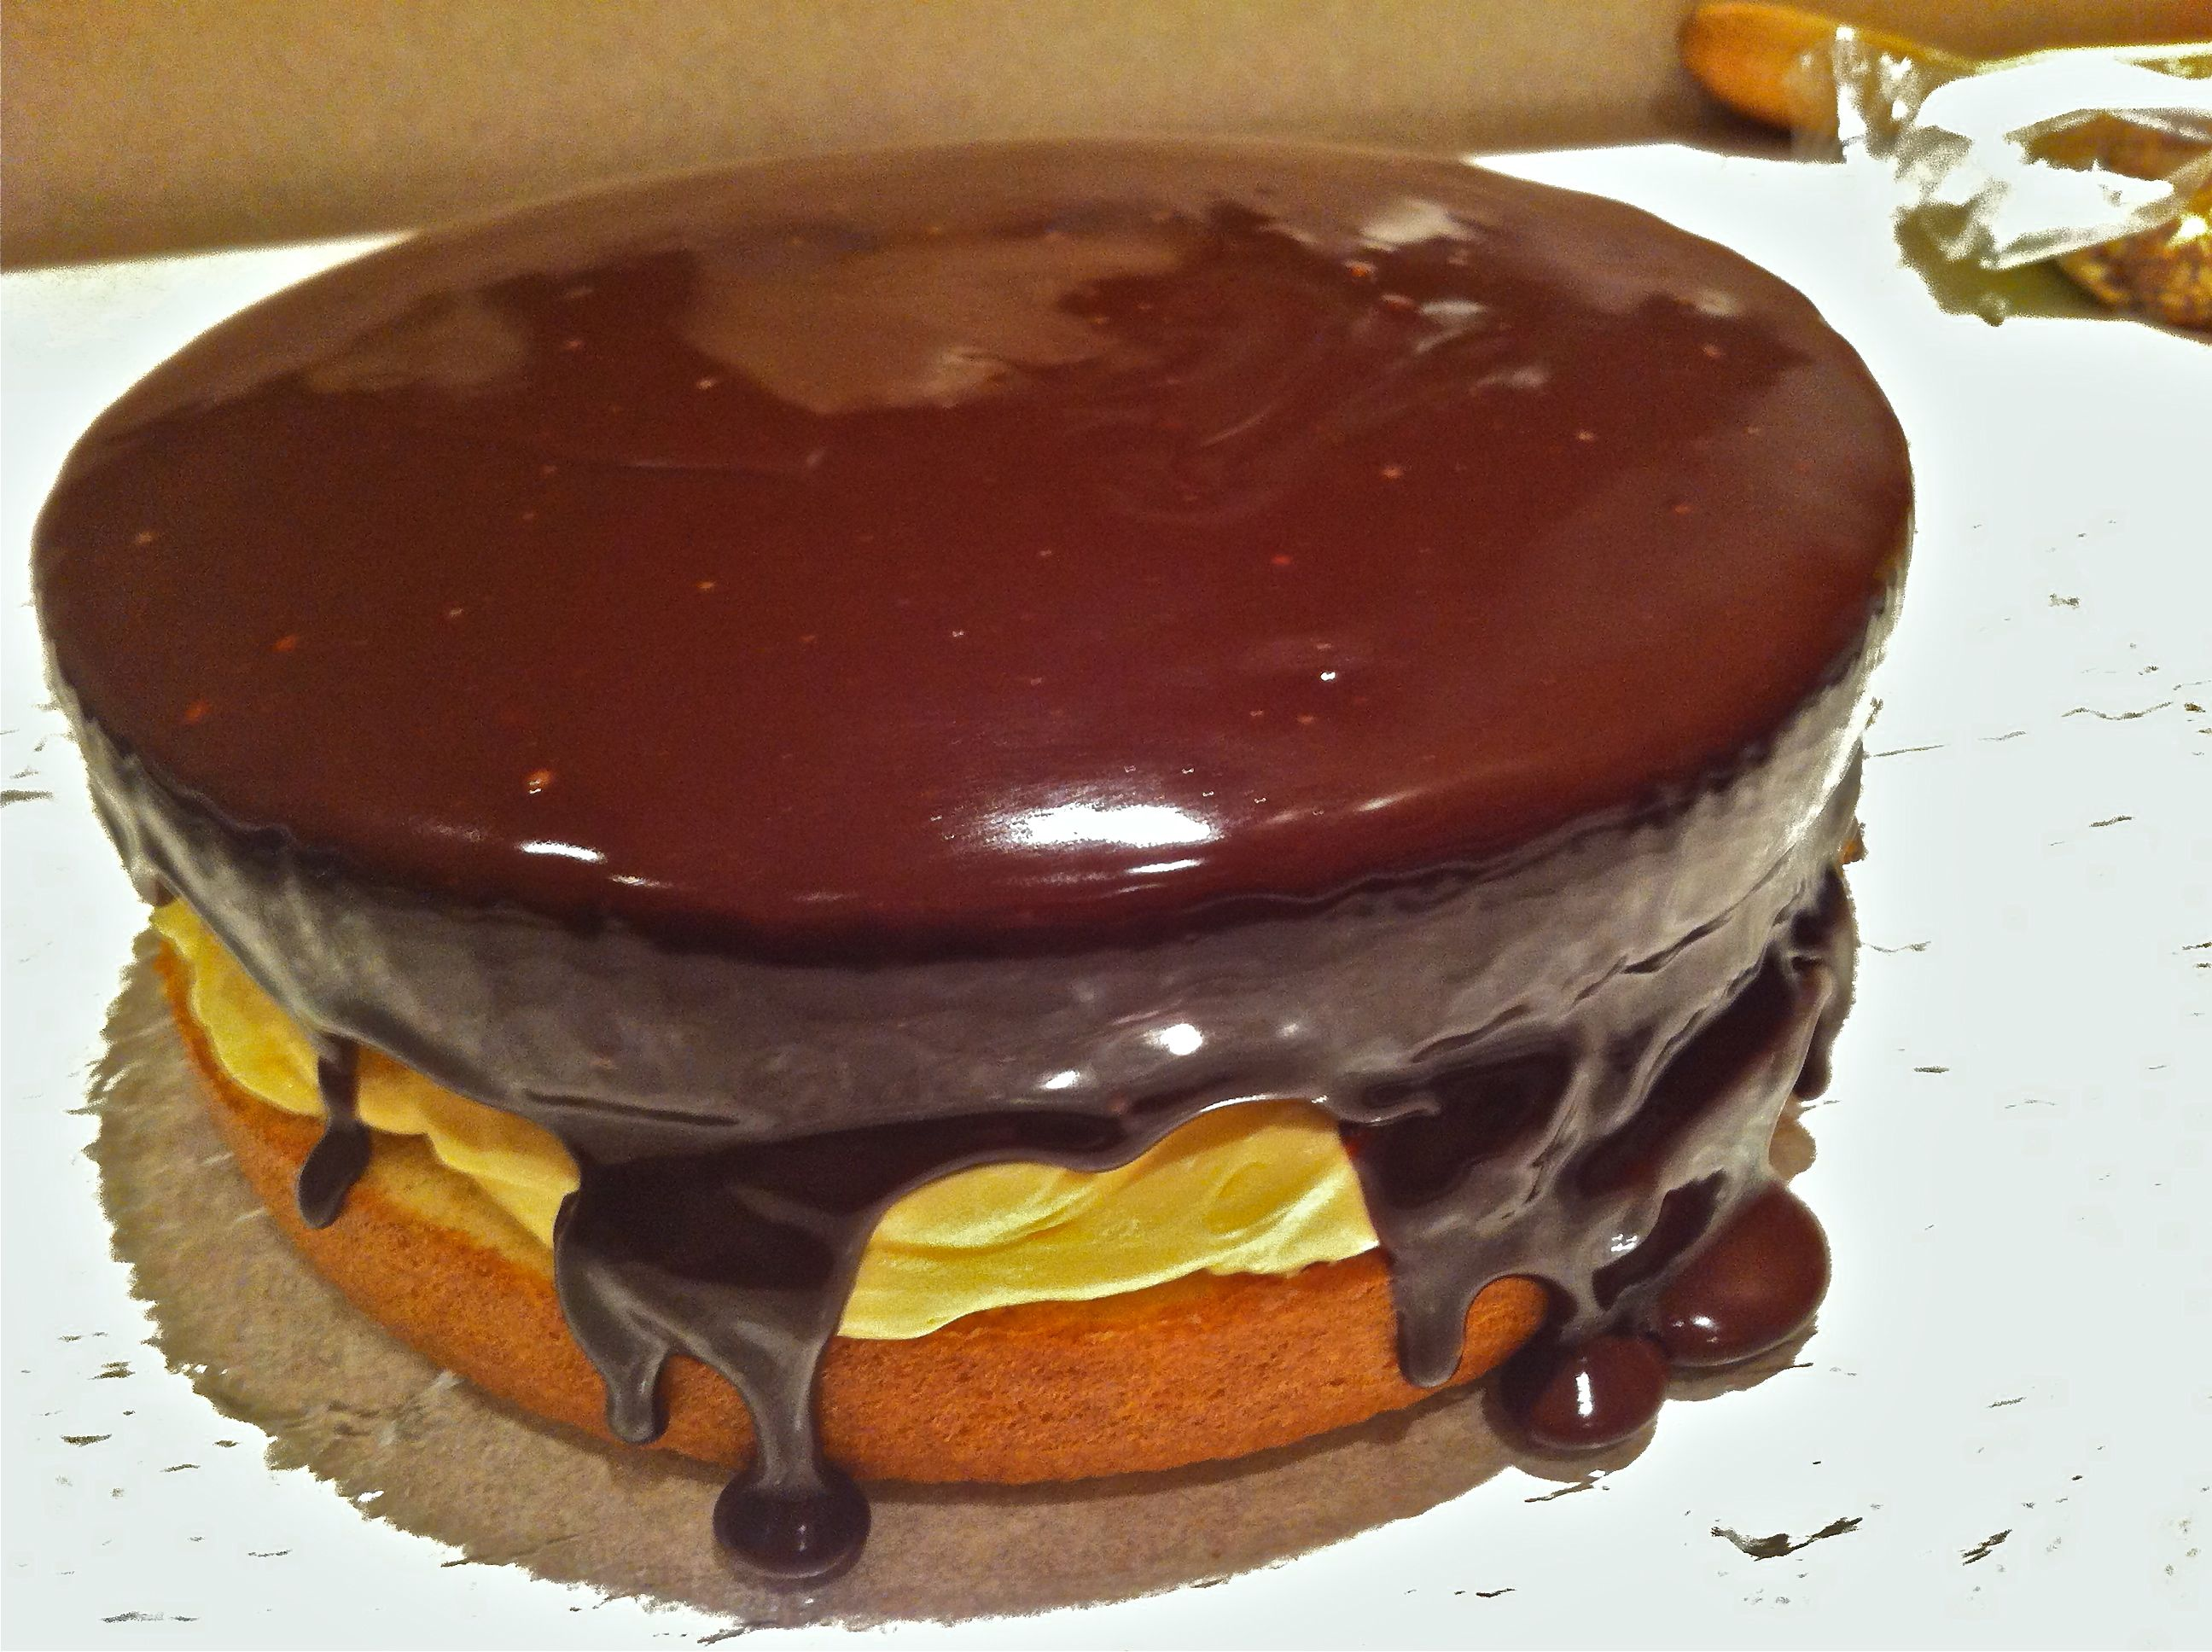 pie boston cream pie boston cream pie boston cream pie boston cream ...